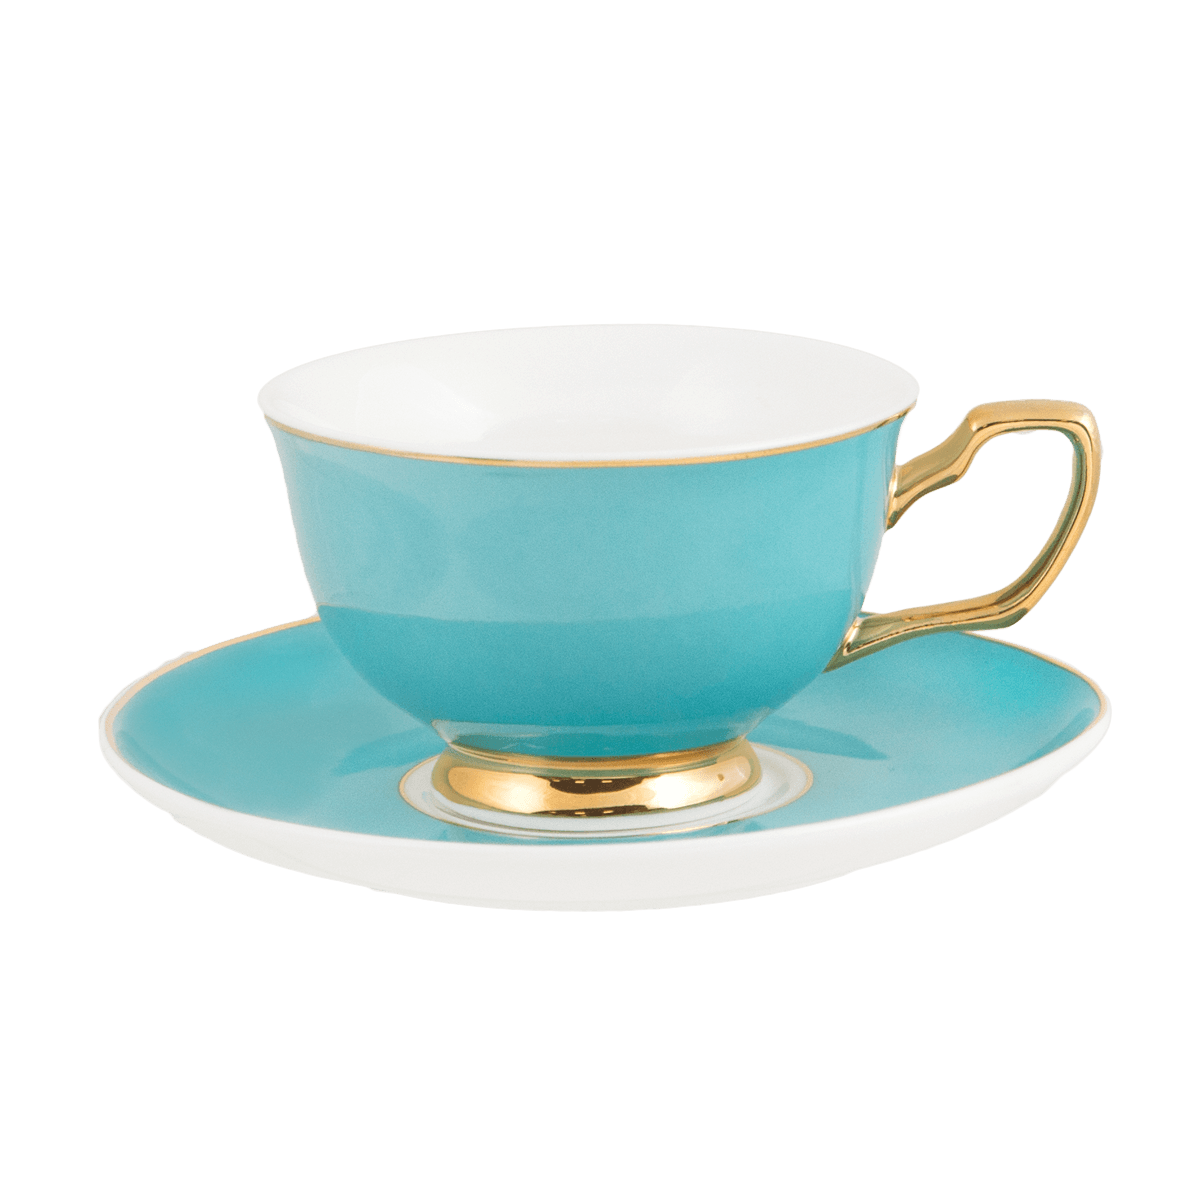 Signature Azure Teacup